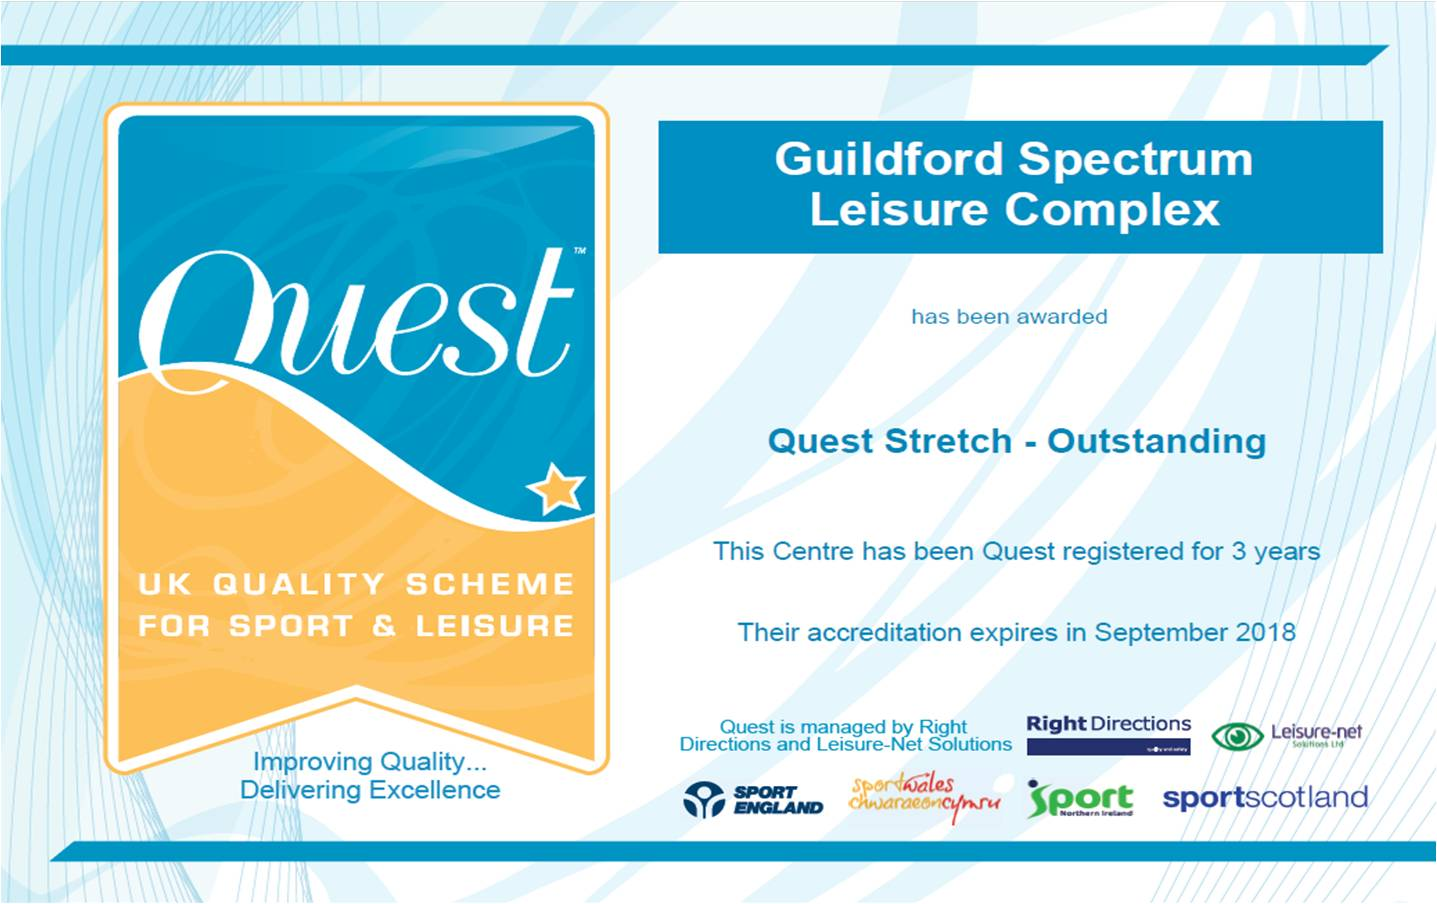 Spectrum is in the top 2.2% of Quest accredited centres in the UK!